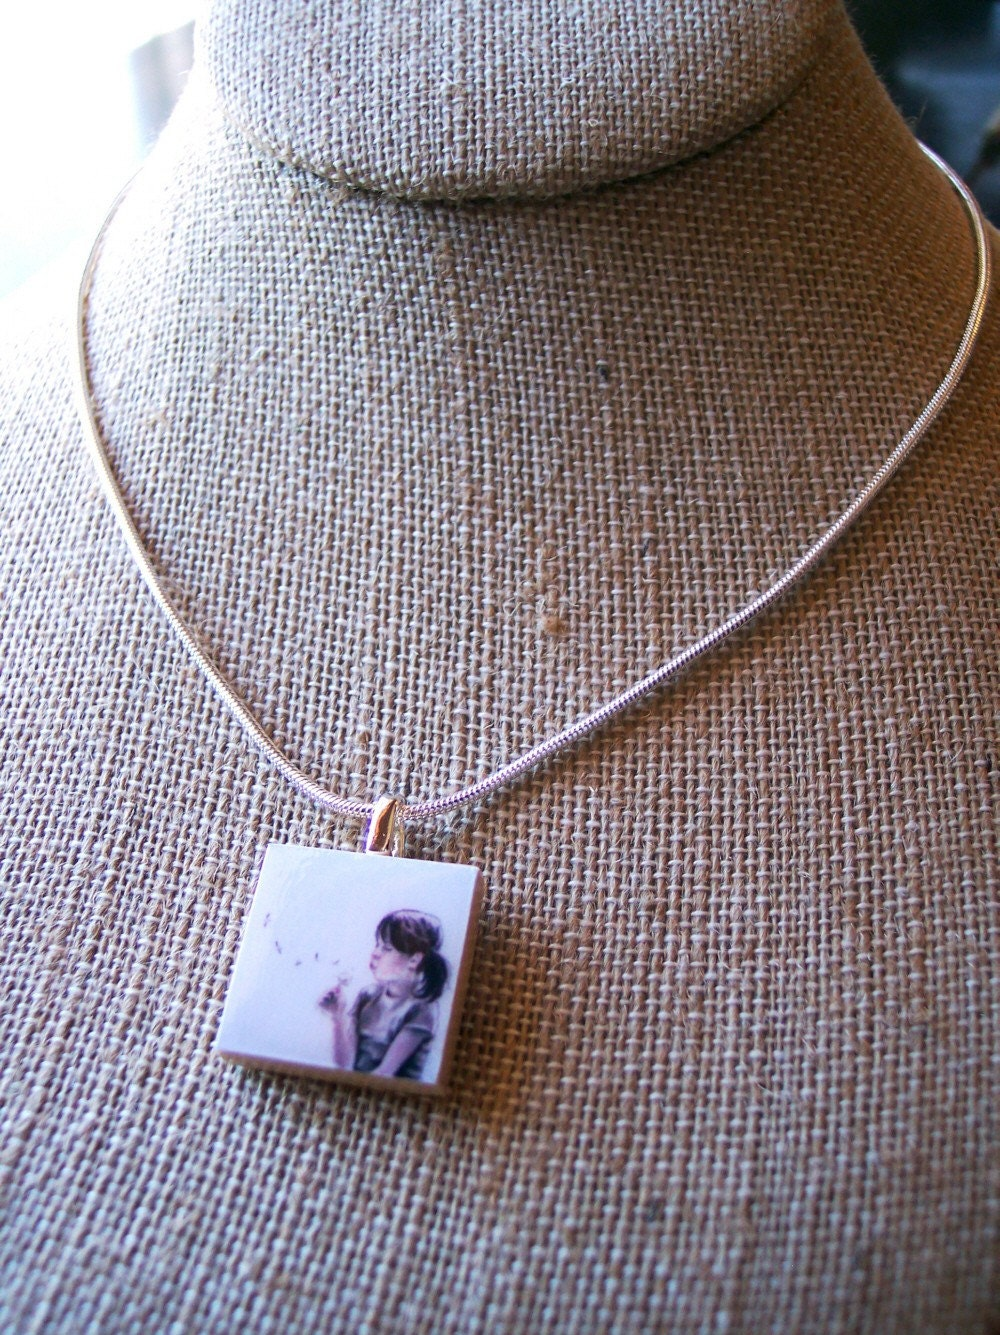 A WISH -- Scrabble Tile Pendant -- FREE CHAIN -- FREE ILLUSTRATION